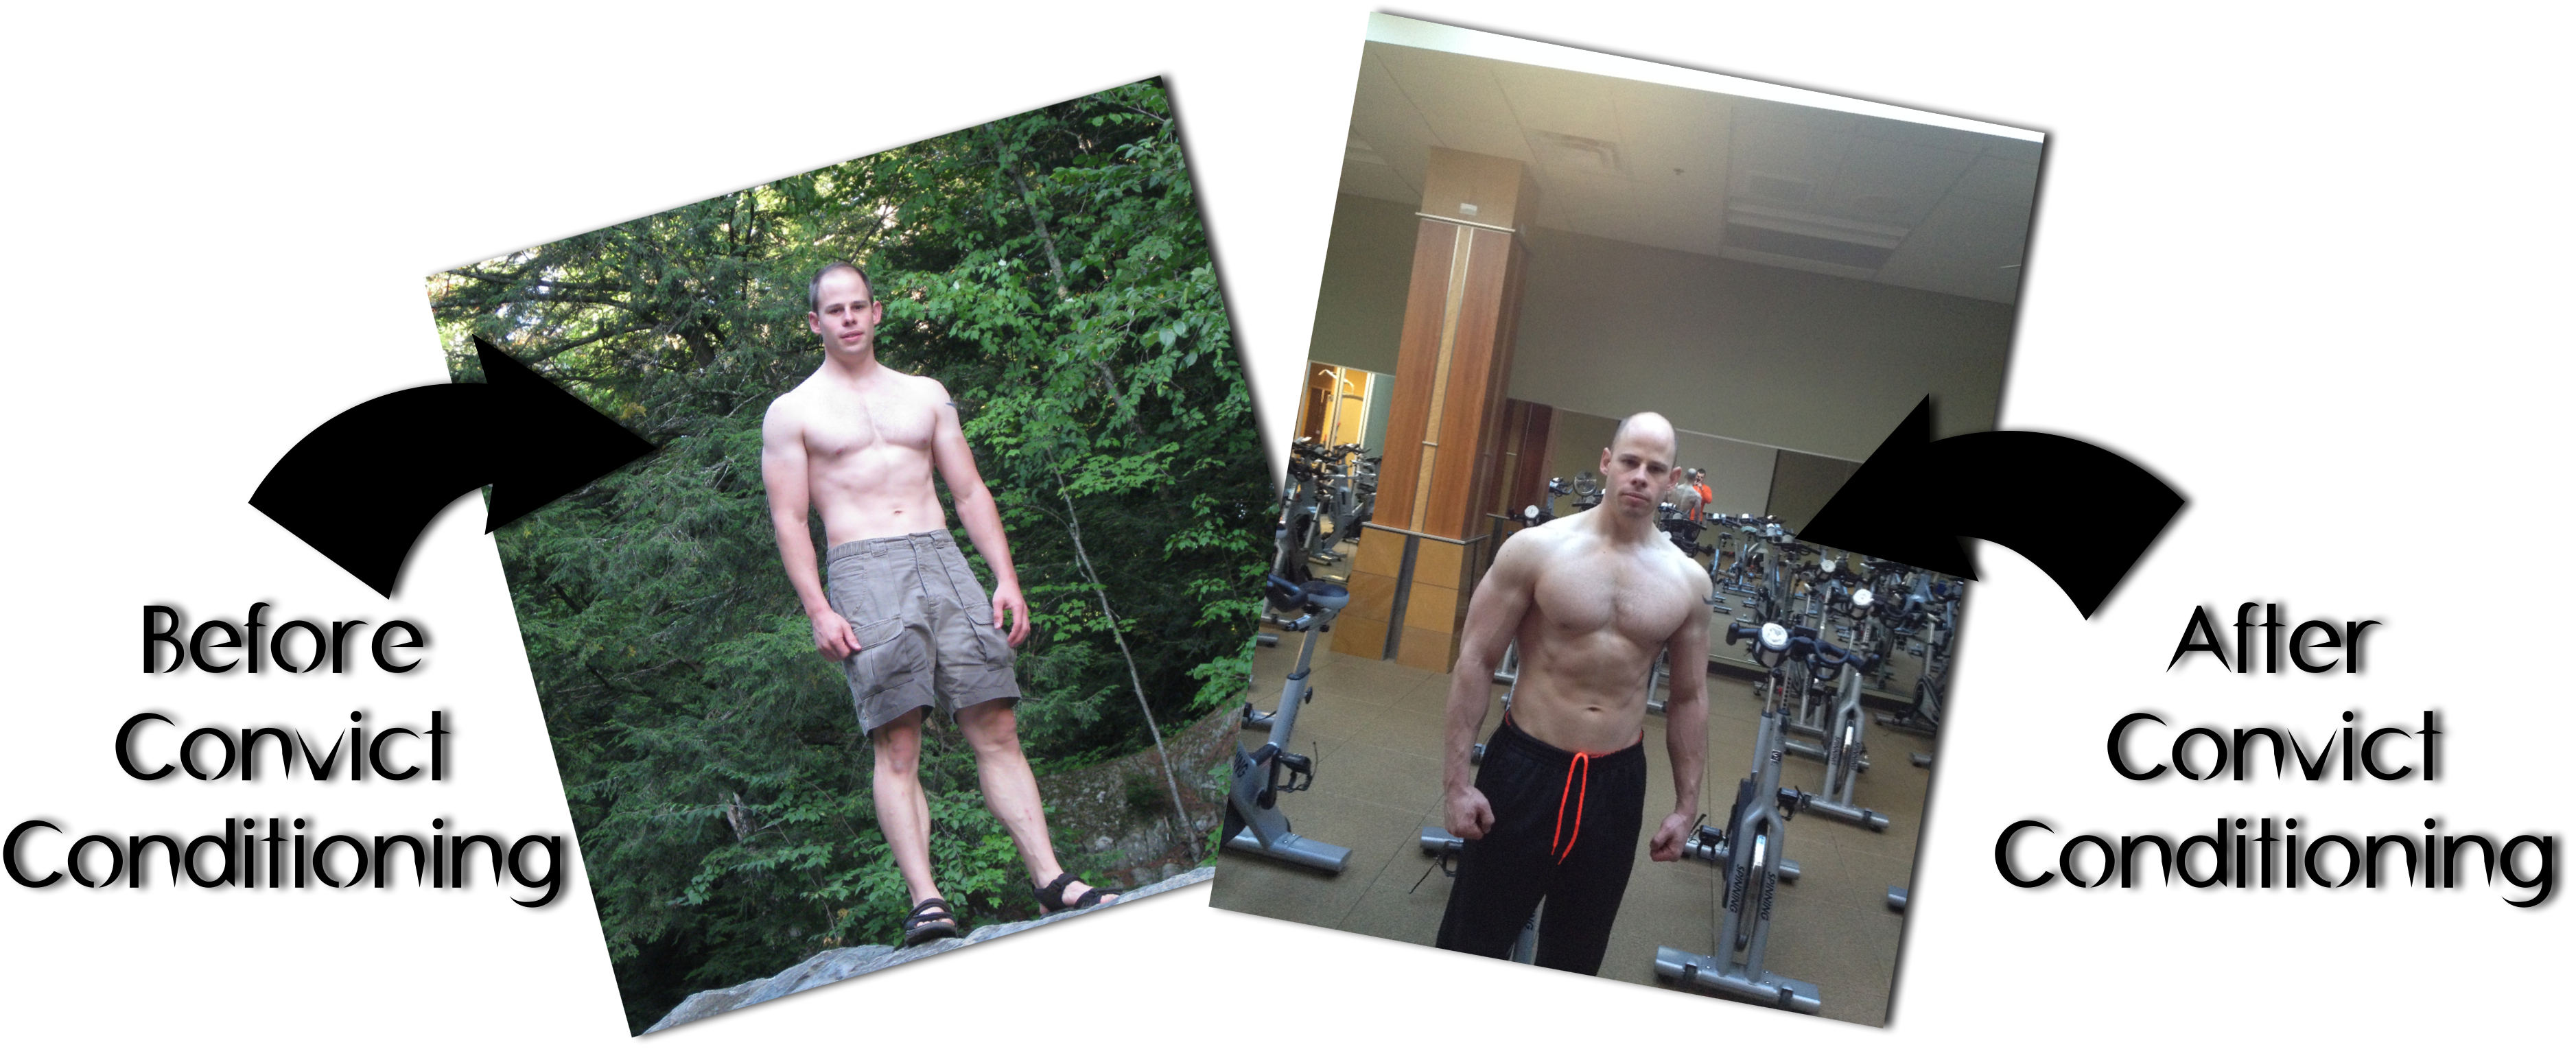 Convict Conditioning Results Convict Conditioning And